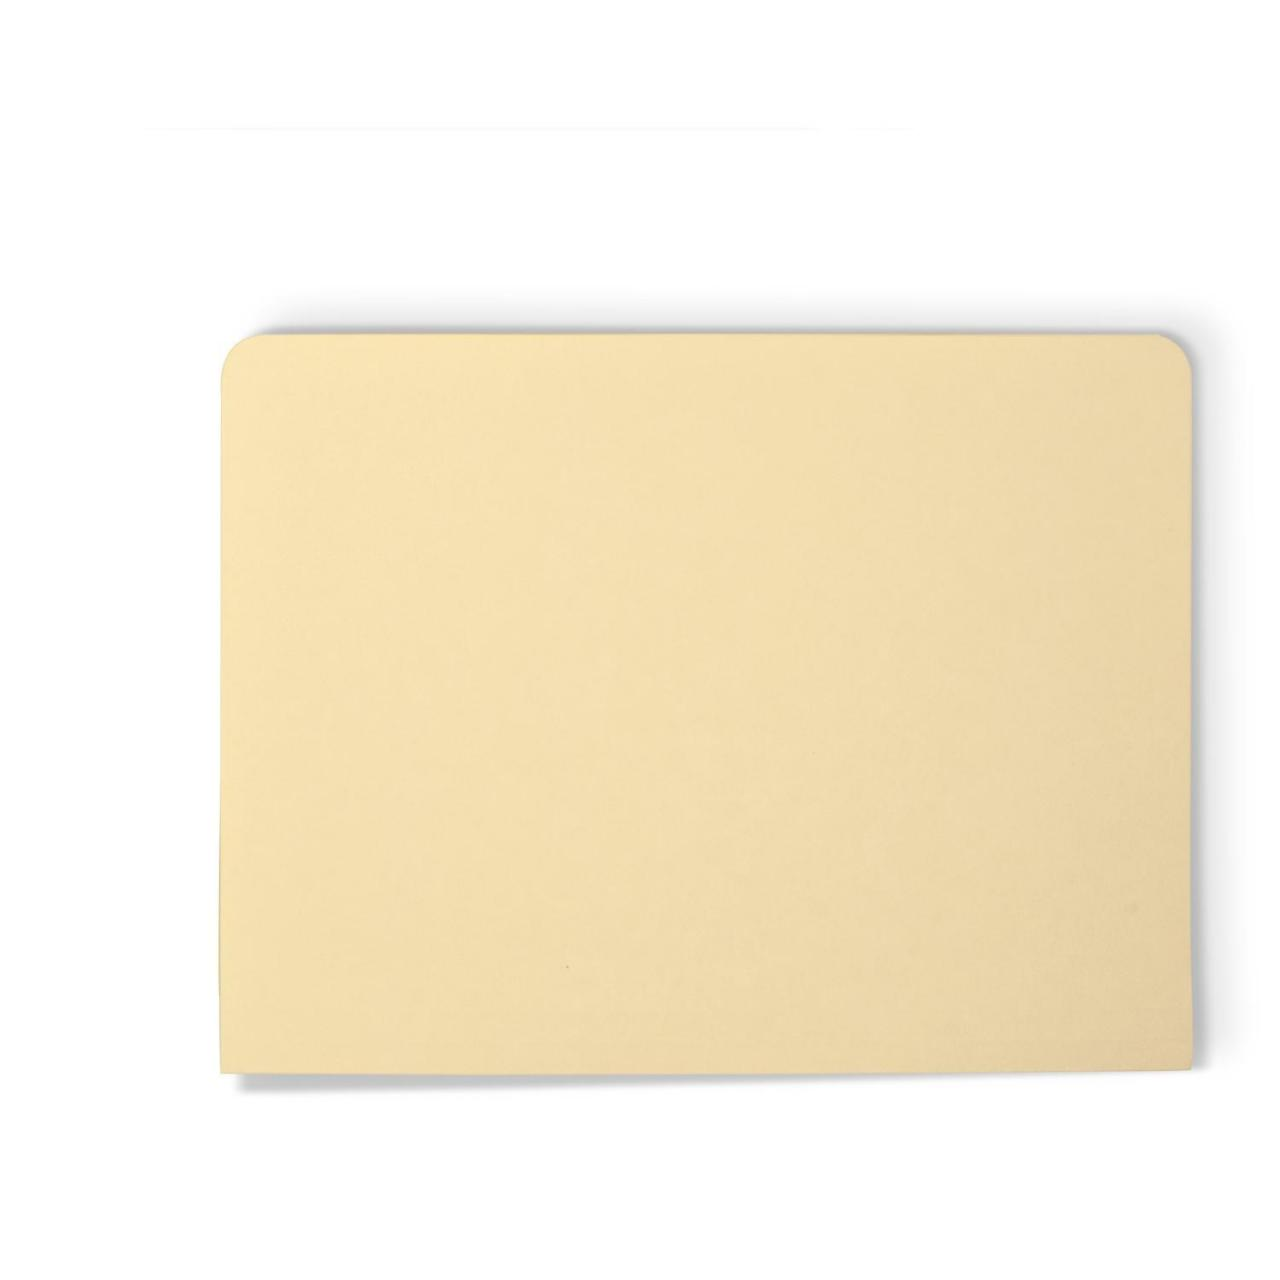 Wholesale Gaylord Archival Untabbed Expanding Letter Size Manuscript File Folders (100-Pack) from china suppliers